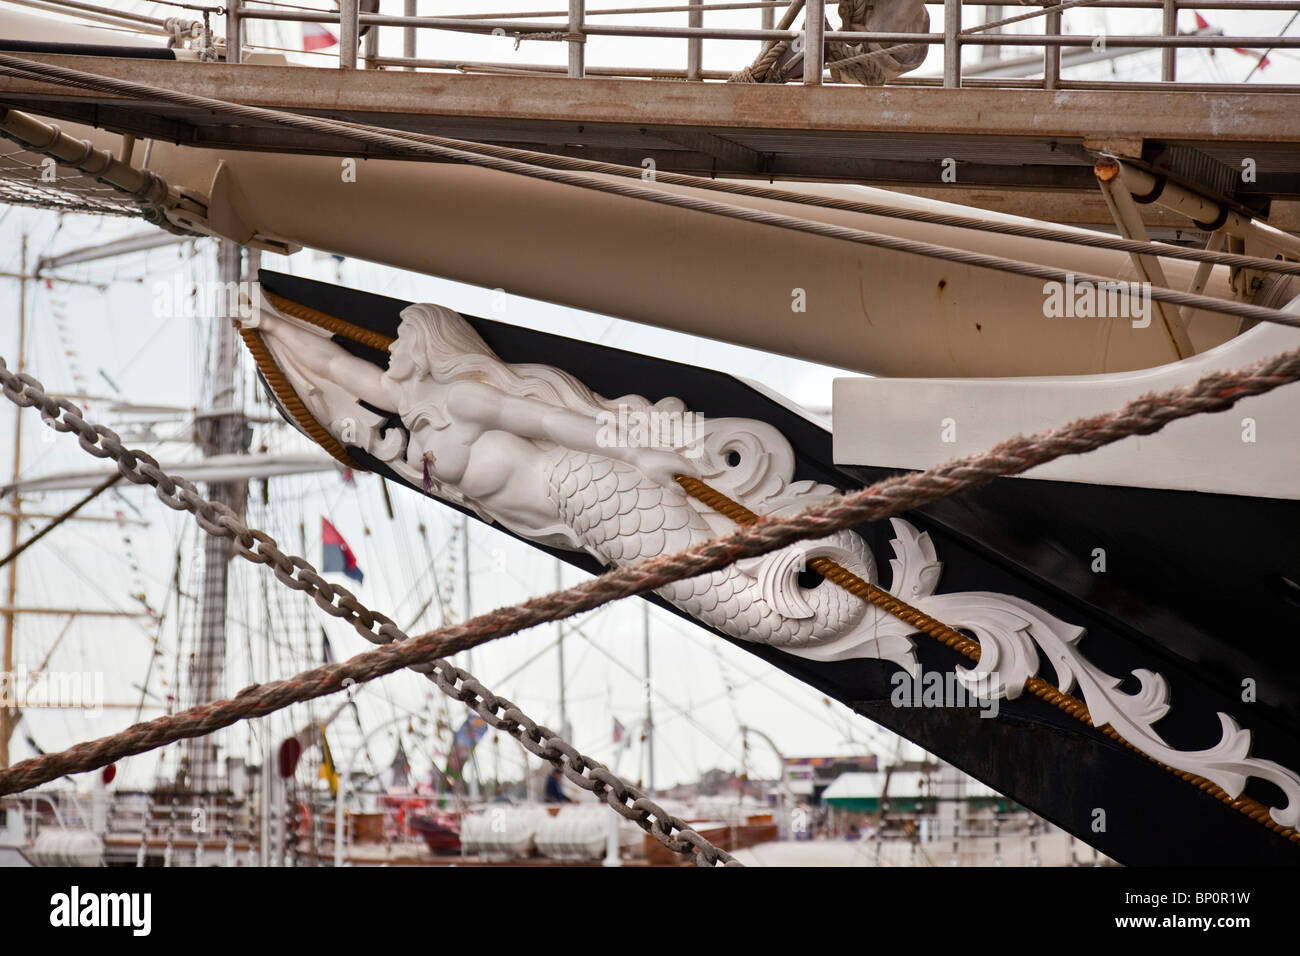 Figure Head from Sailing Ship in the Tall Ships Race 2010, Hartlepool, Cleveland, North East England, UK - Stock Image